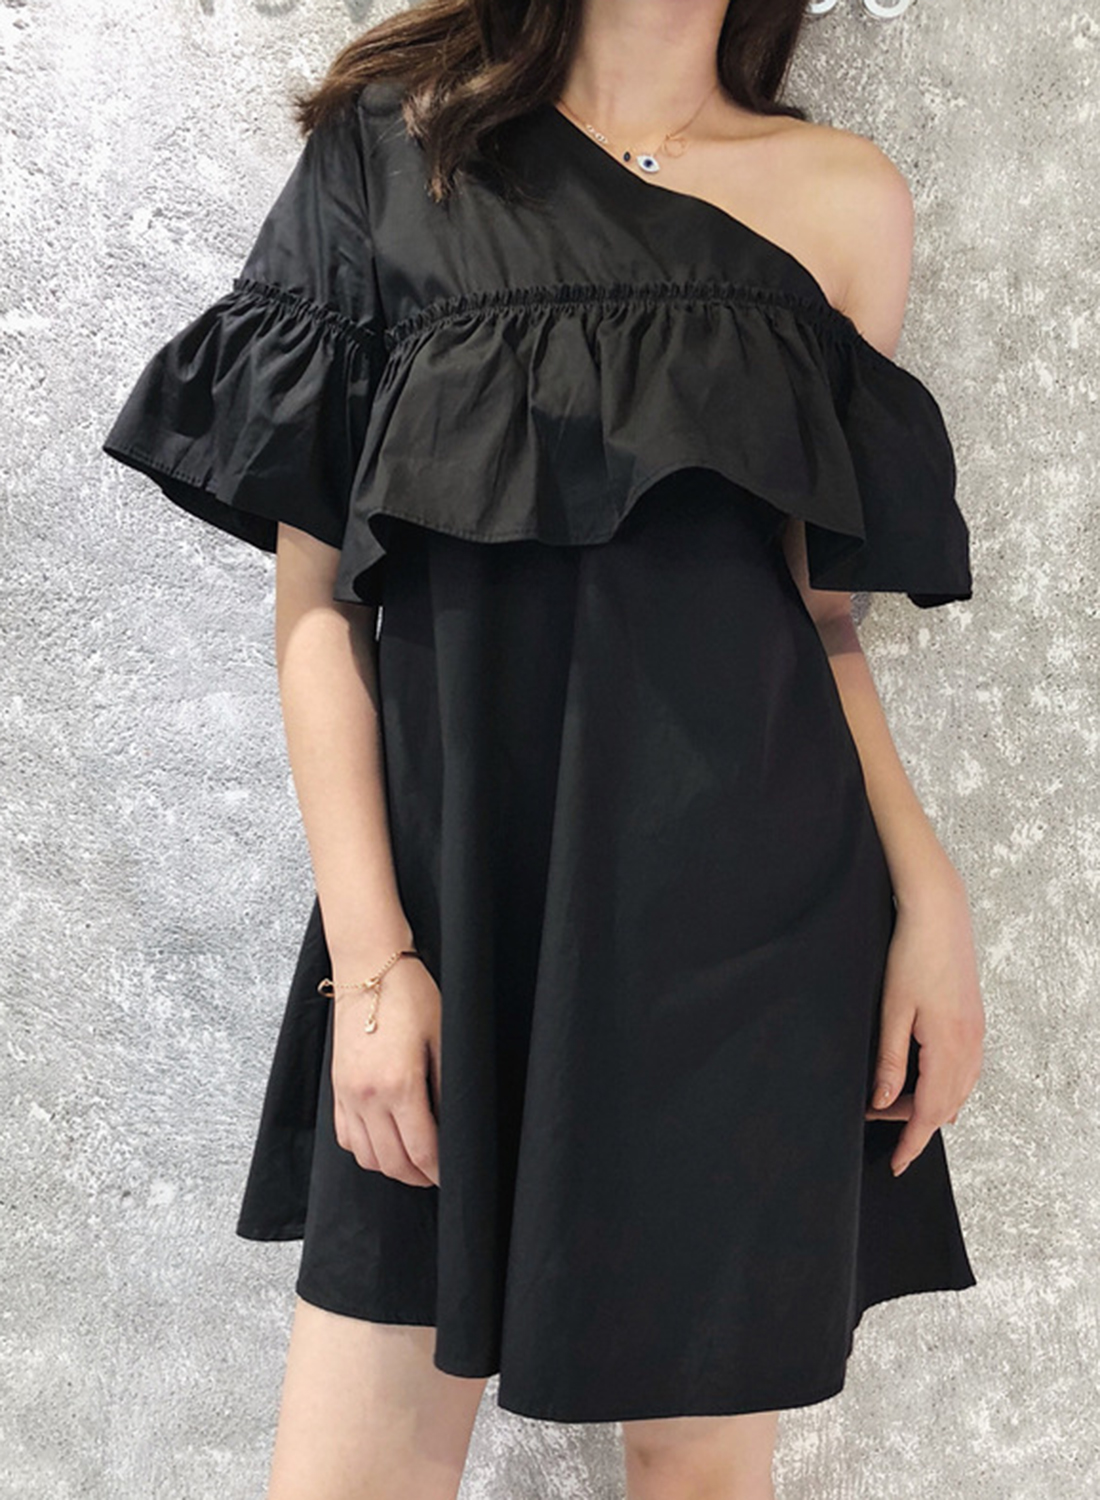 614c18fc279 Summer Sexy One Off Shoulder Ruffle Trim Short Sleeve Loose Solid Dress  STYLESIMO.com. Loading zoom